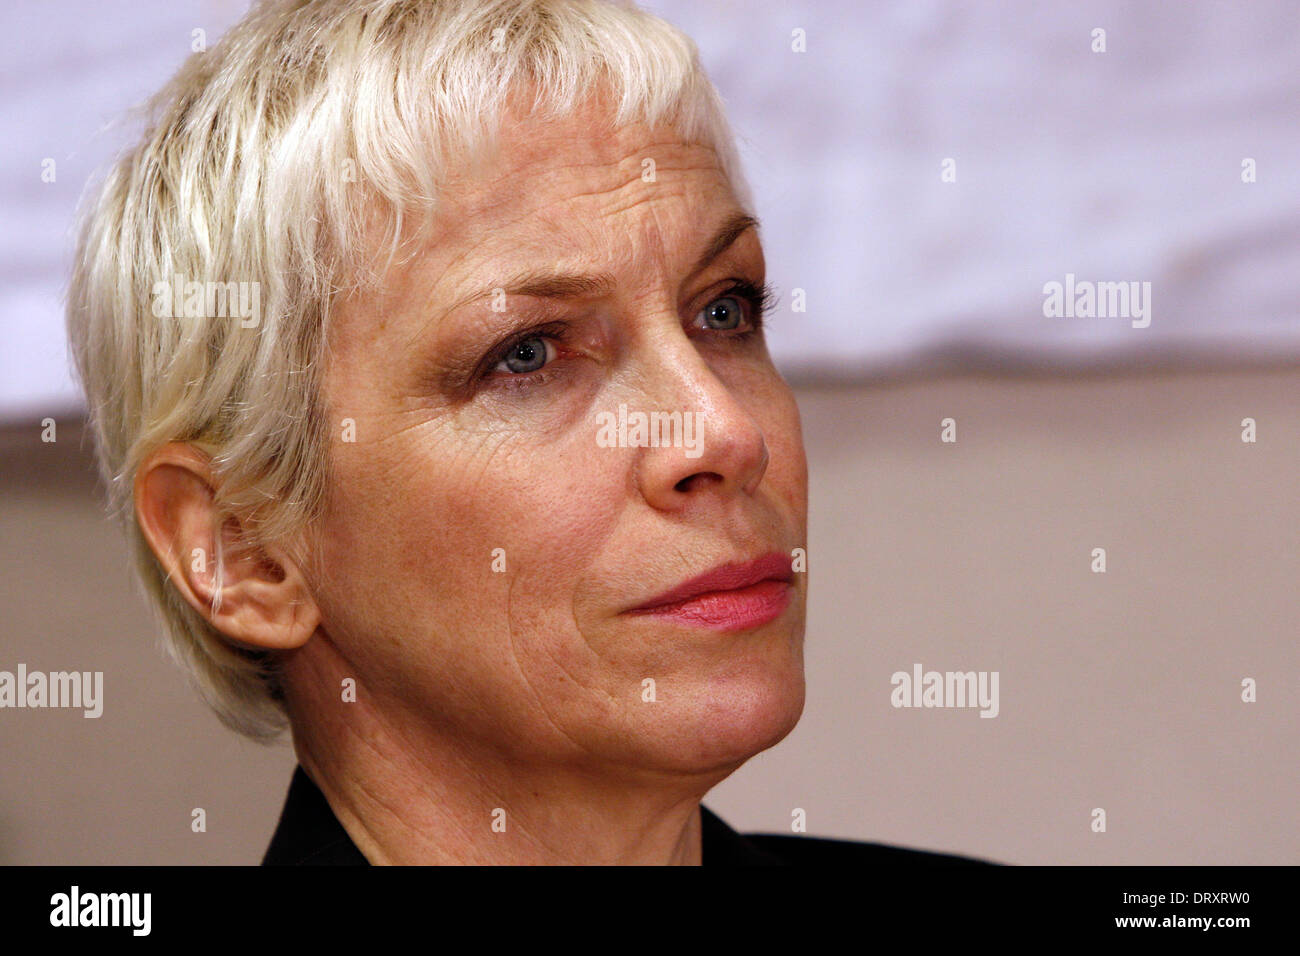 A tearful singer Annie Lenox at a unilateral Gaza press conference held at London Holiday Inn - Stock Image